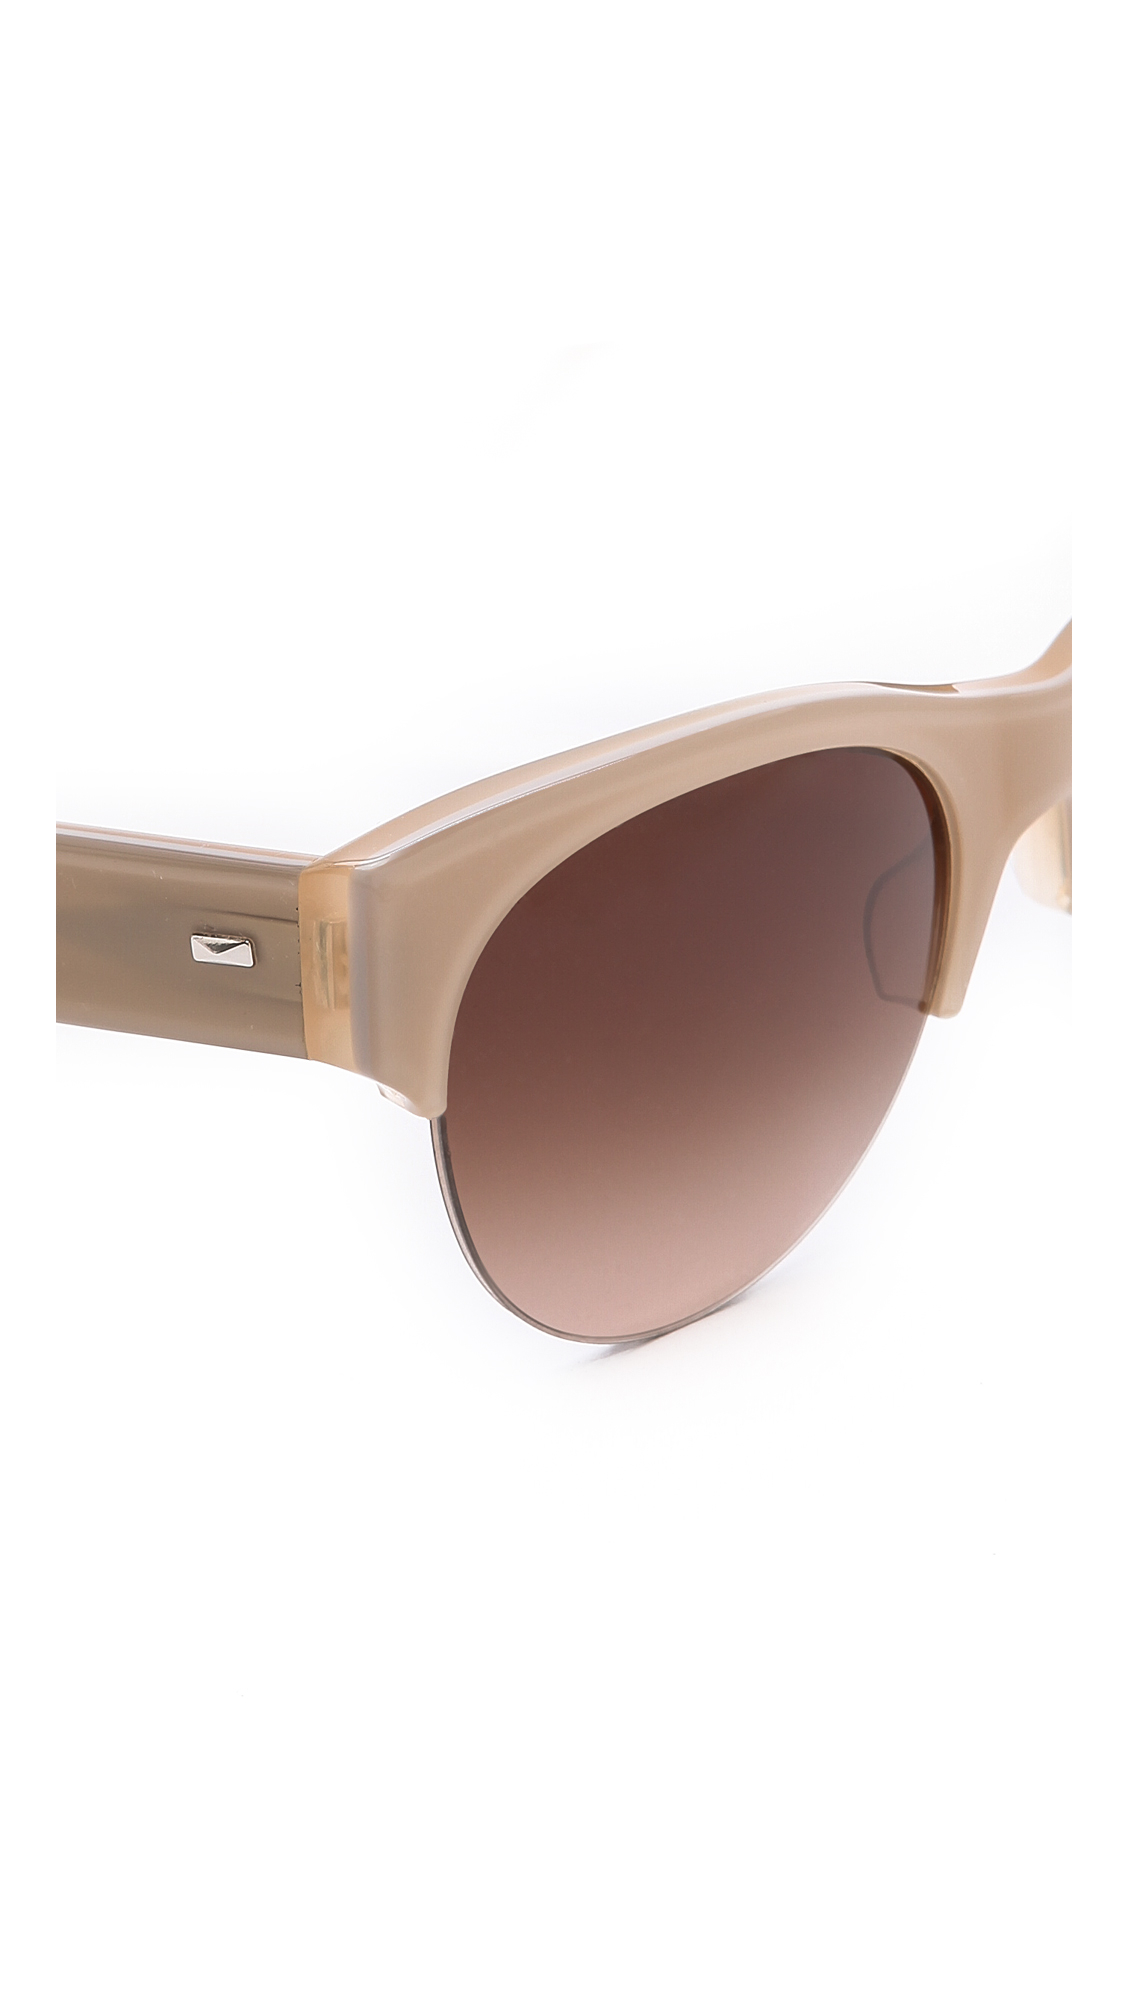 Oliver Peoples Louella Sunglasses in Natural